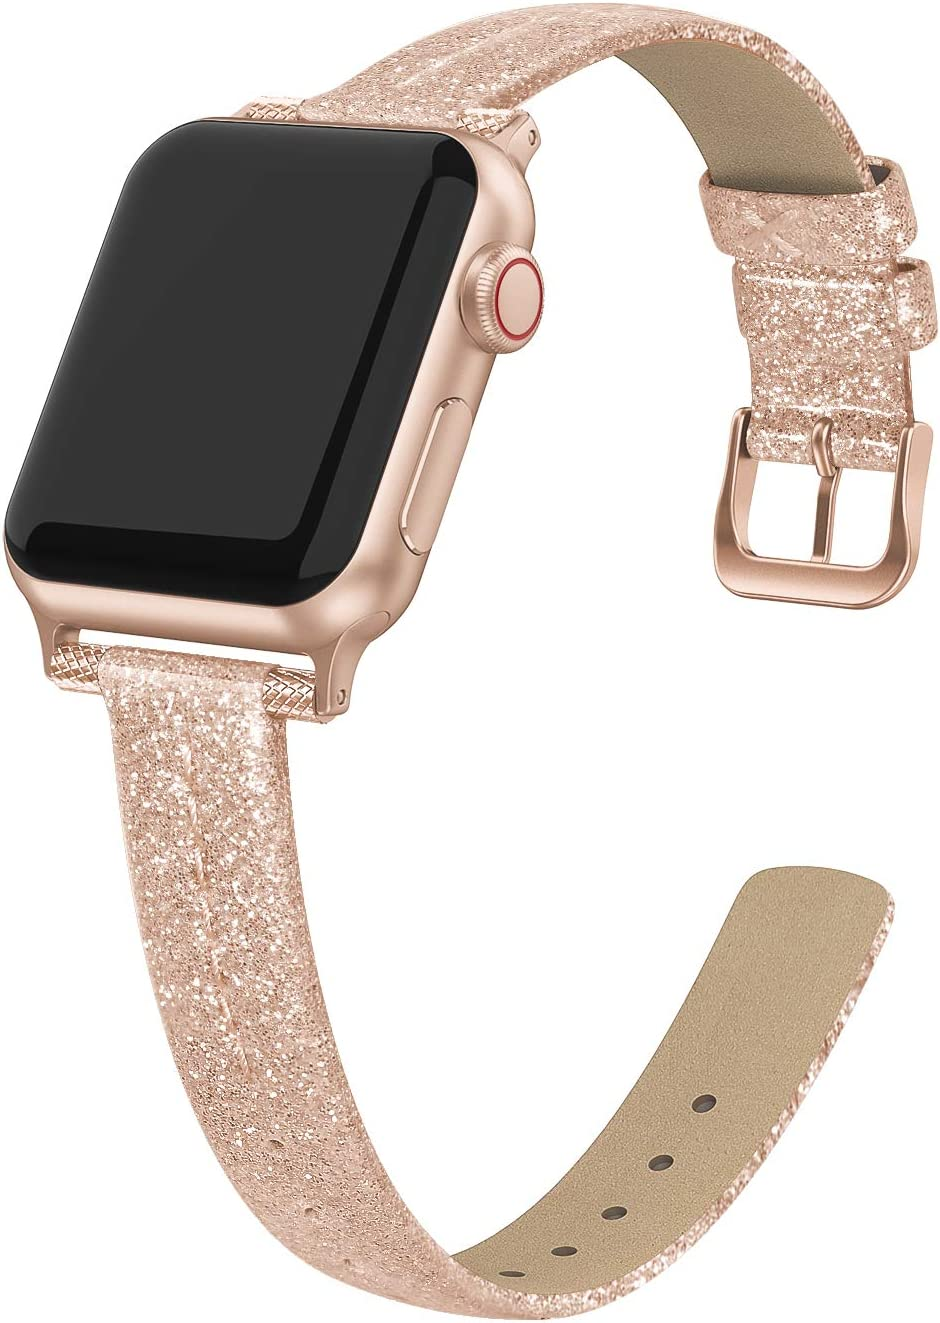 Yutior Leather Bands Compatible for Apple Watch 38mm 40mm, Designer Slim Wrist Band for Apple Watch iWatch Bands 38mm Series SE 6 5 4 3 2 1 Women Bling Rose Gold Leather, Ladies Girls Beaded Thin Strap Bracelet